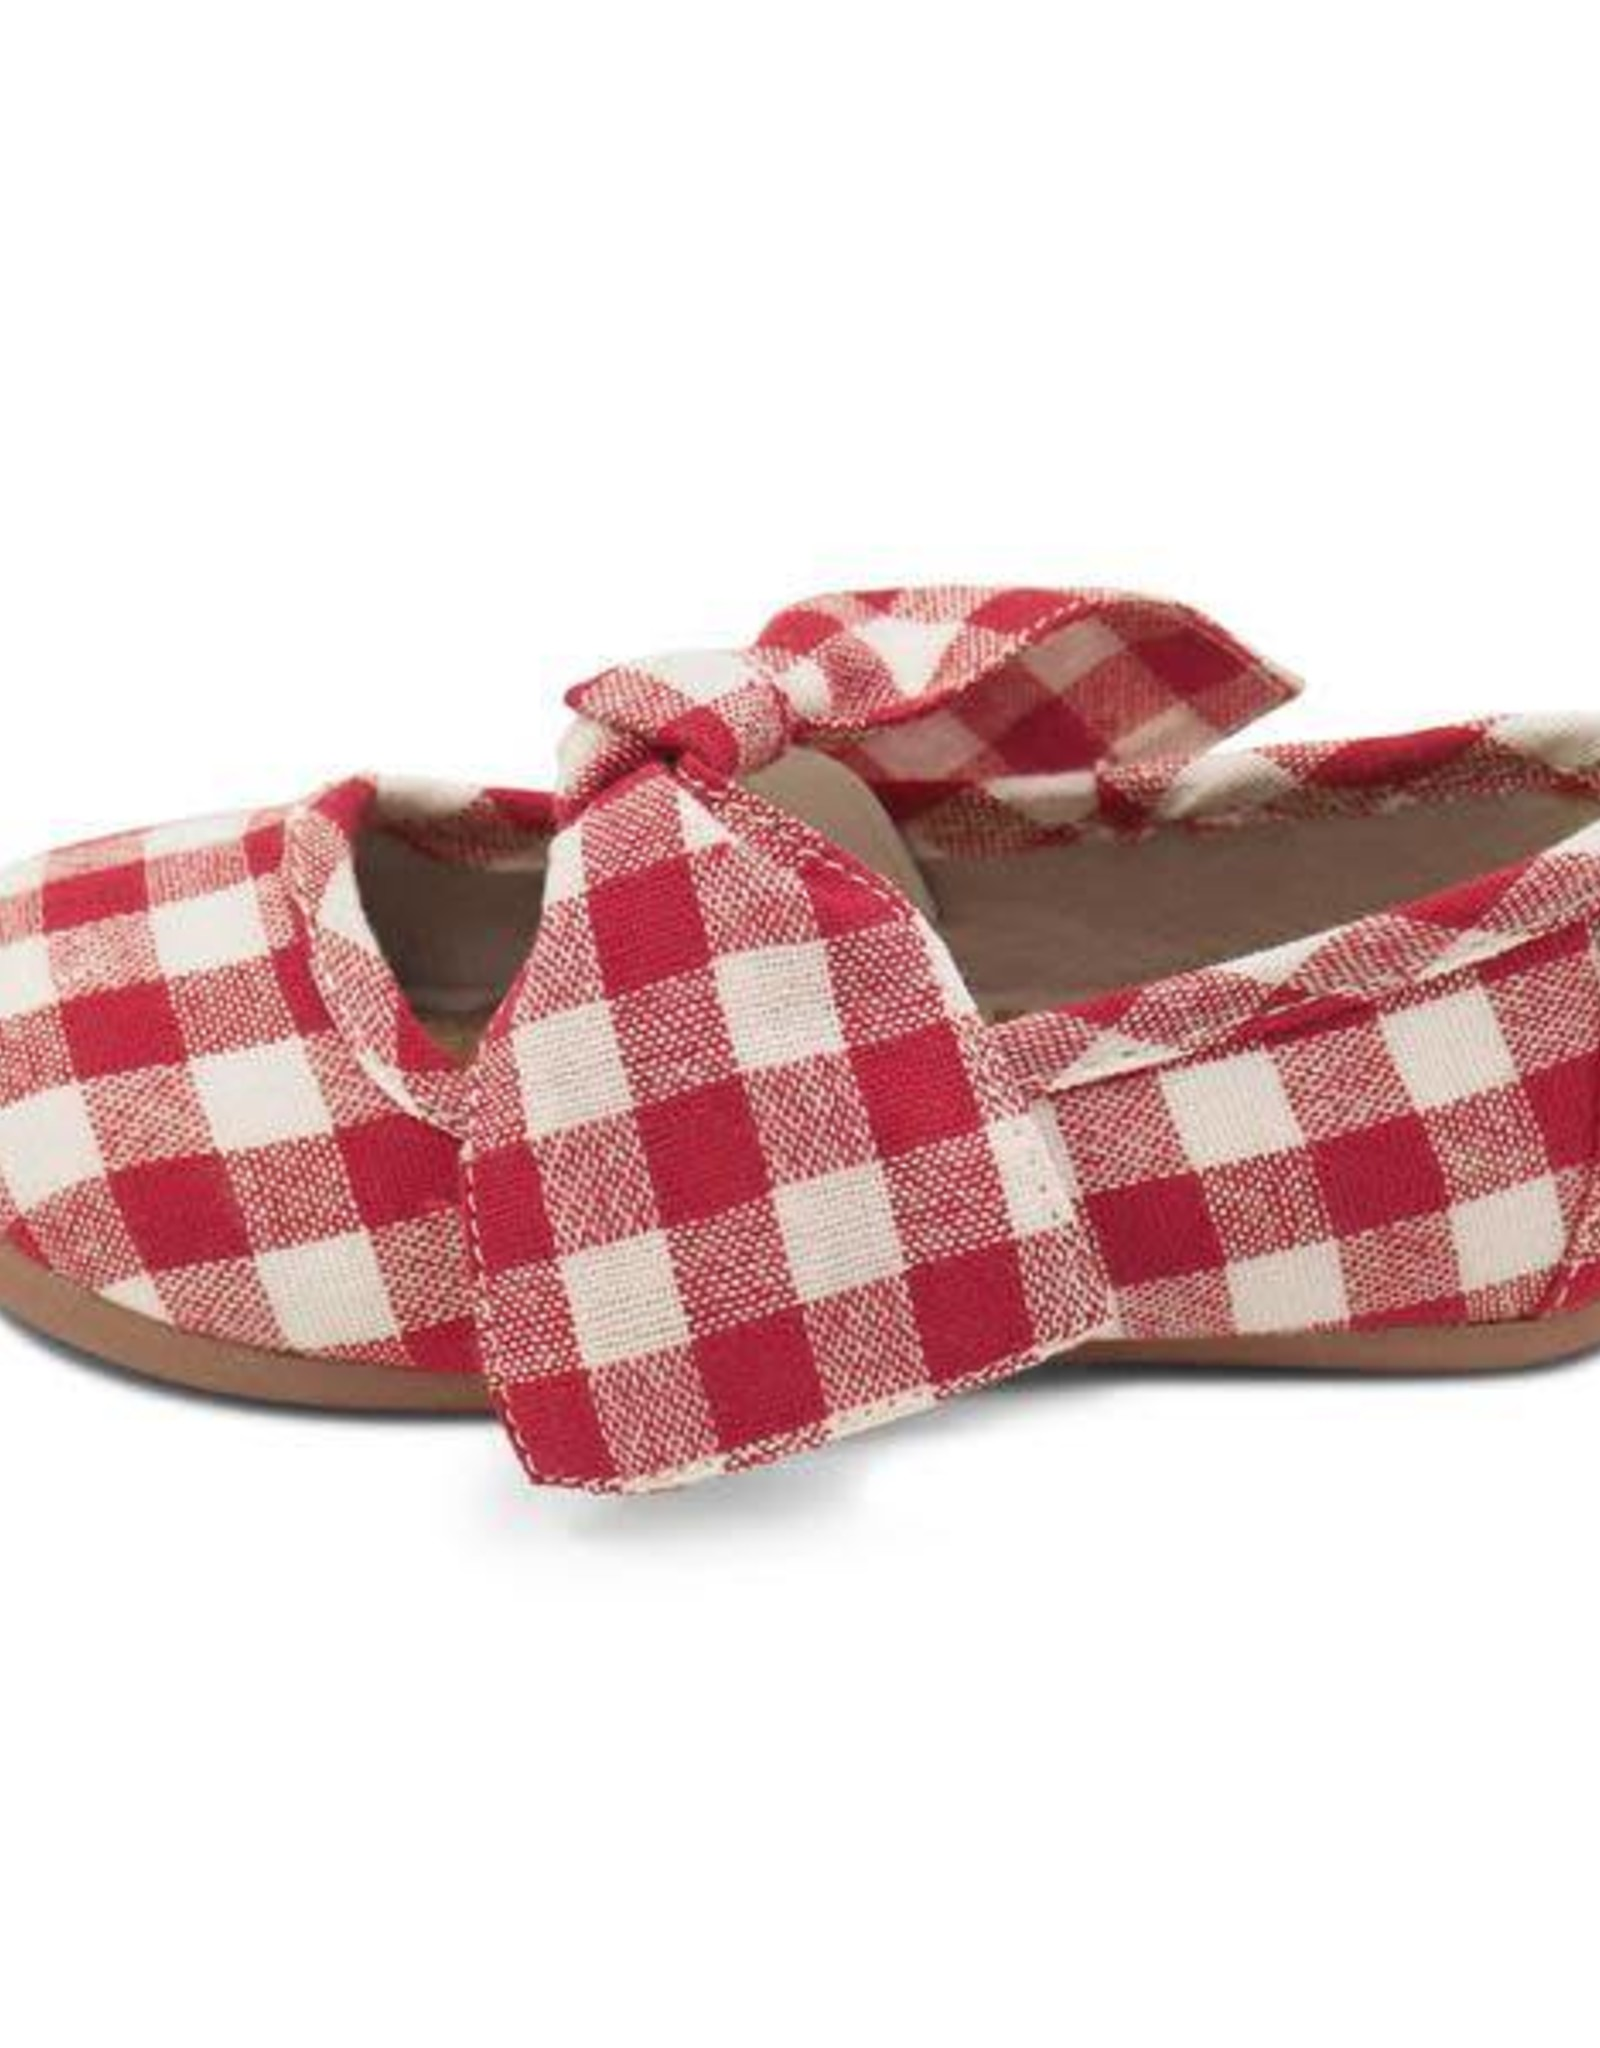 Livie and Luca Halley Ballet Flat in Red Gingham